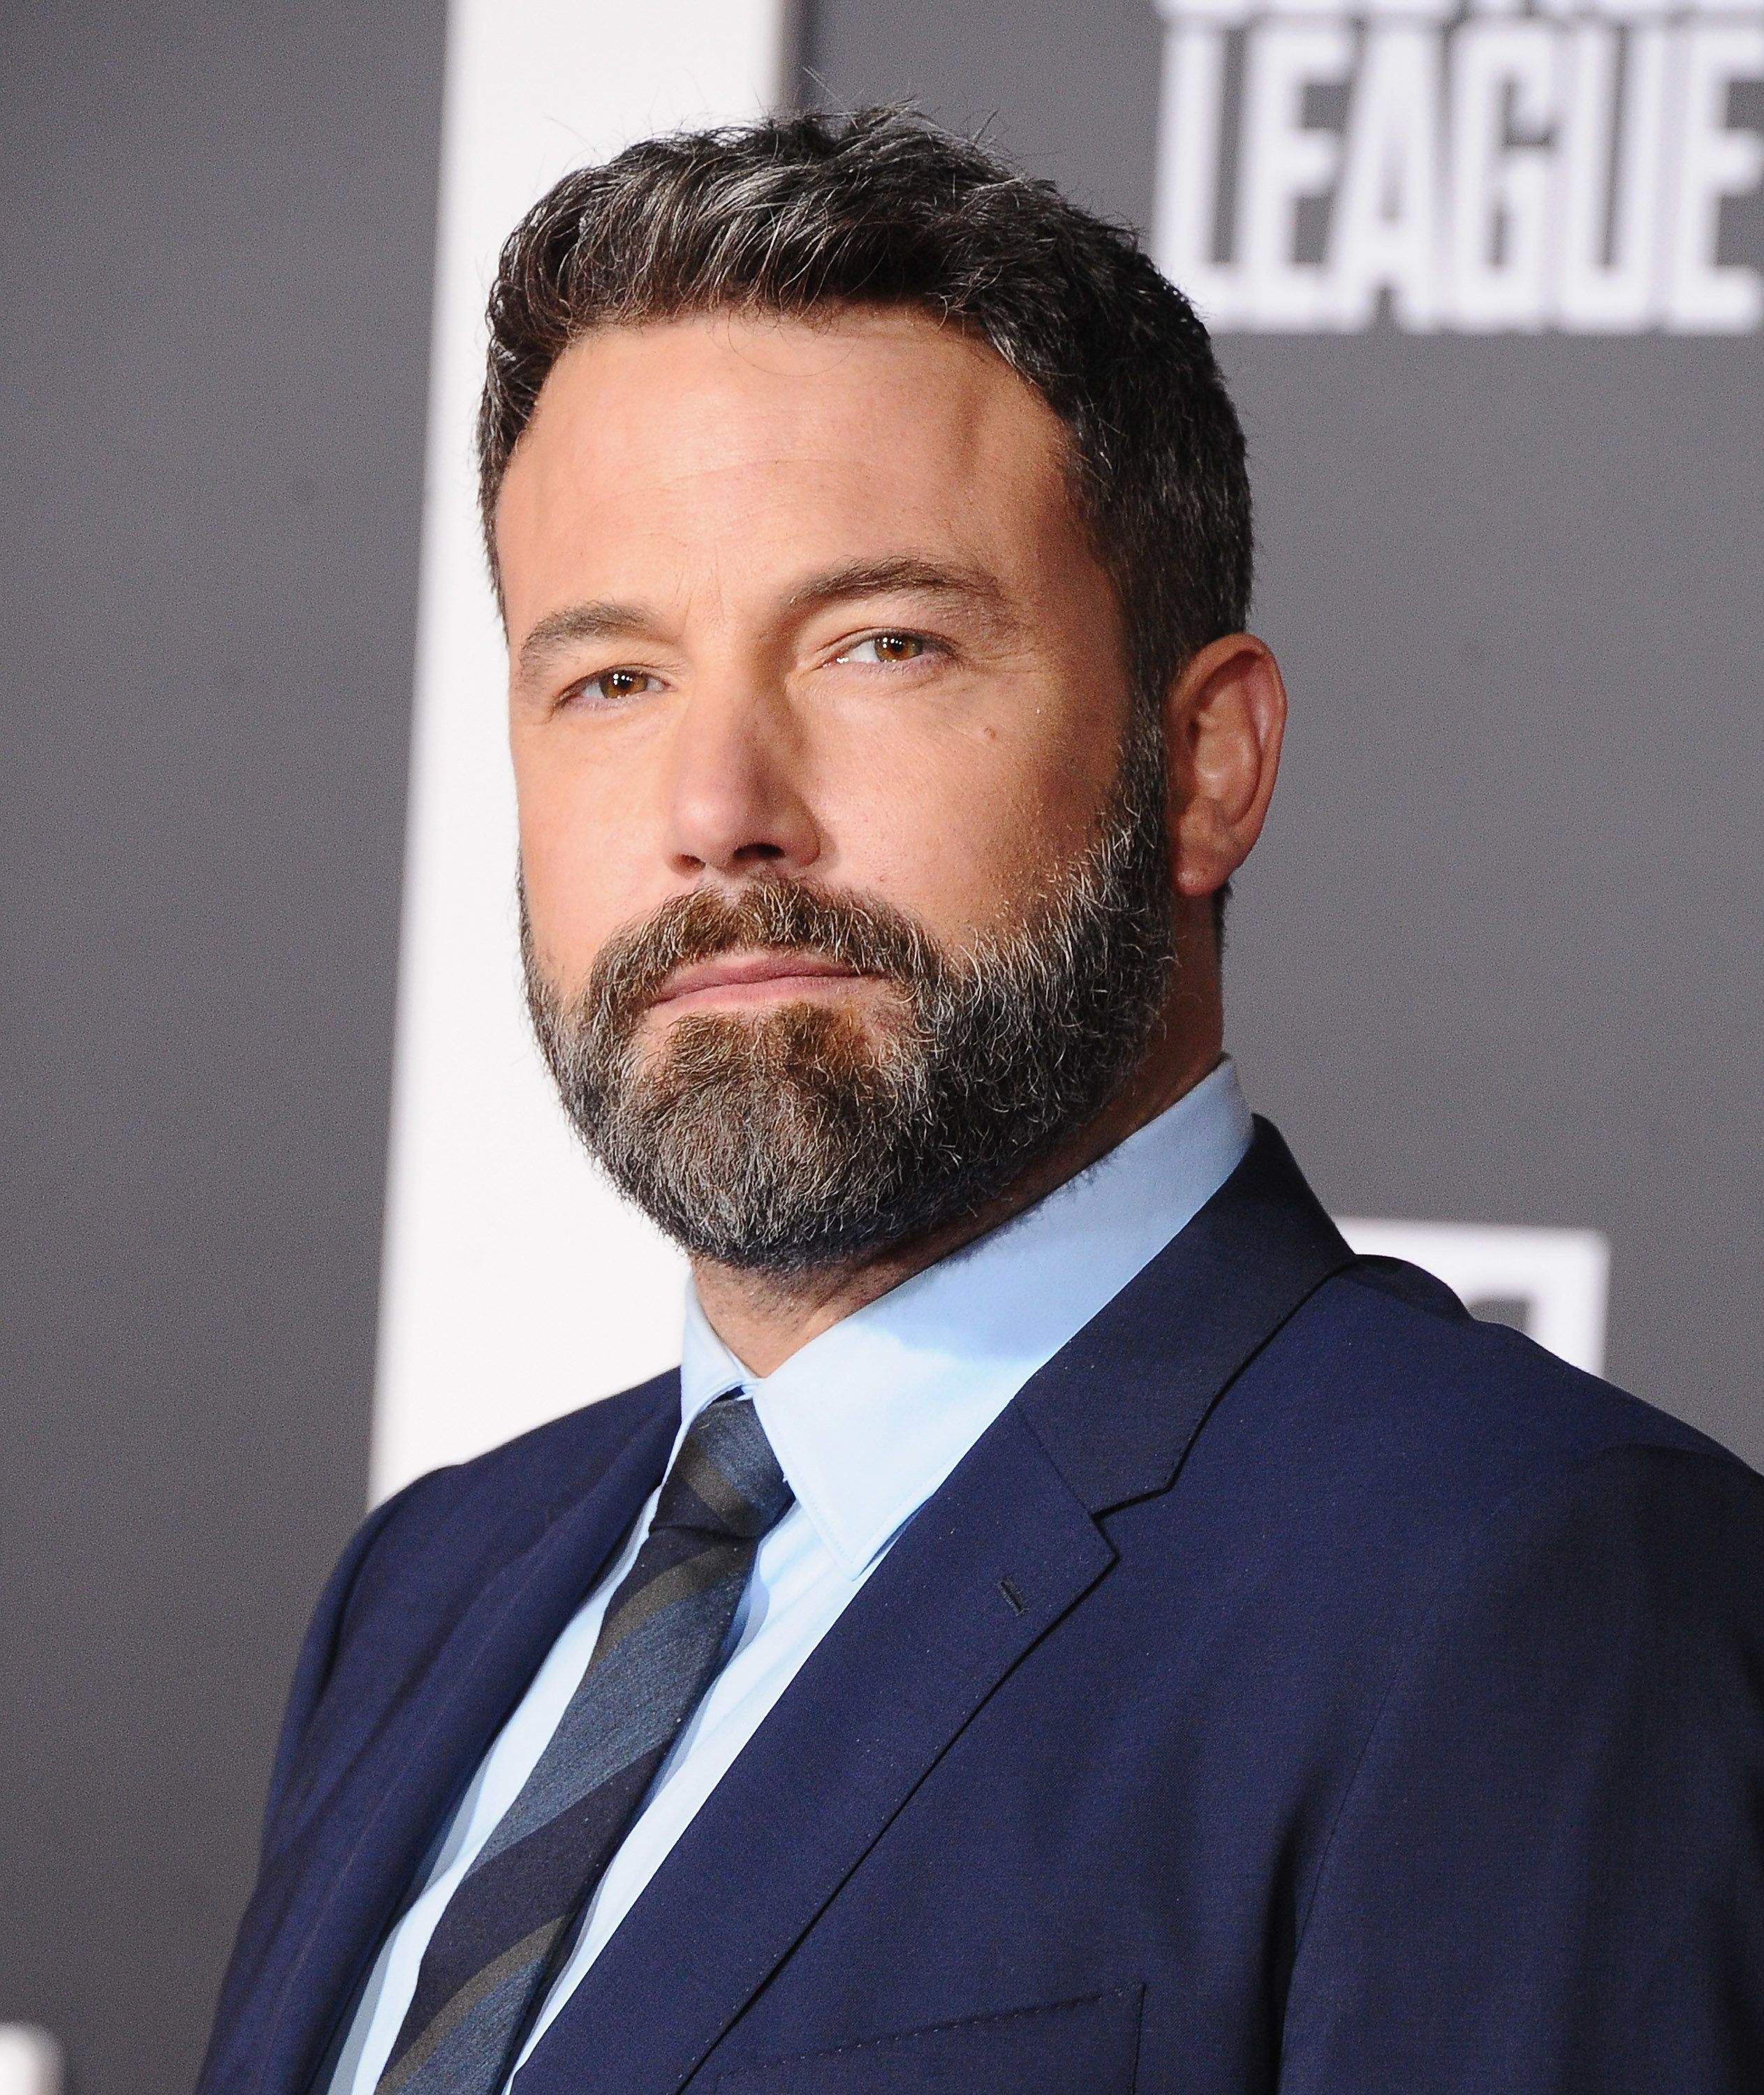 Ben Affleck criticised for sexual harassment joke